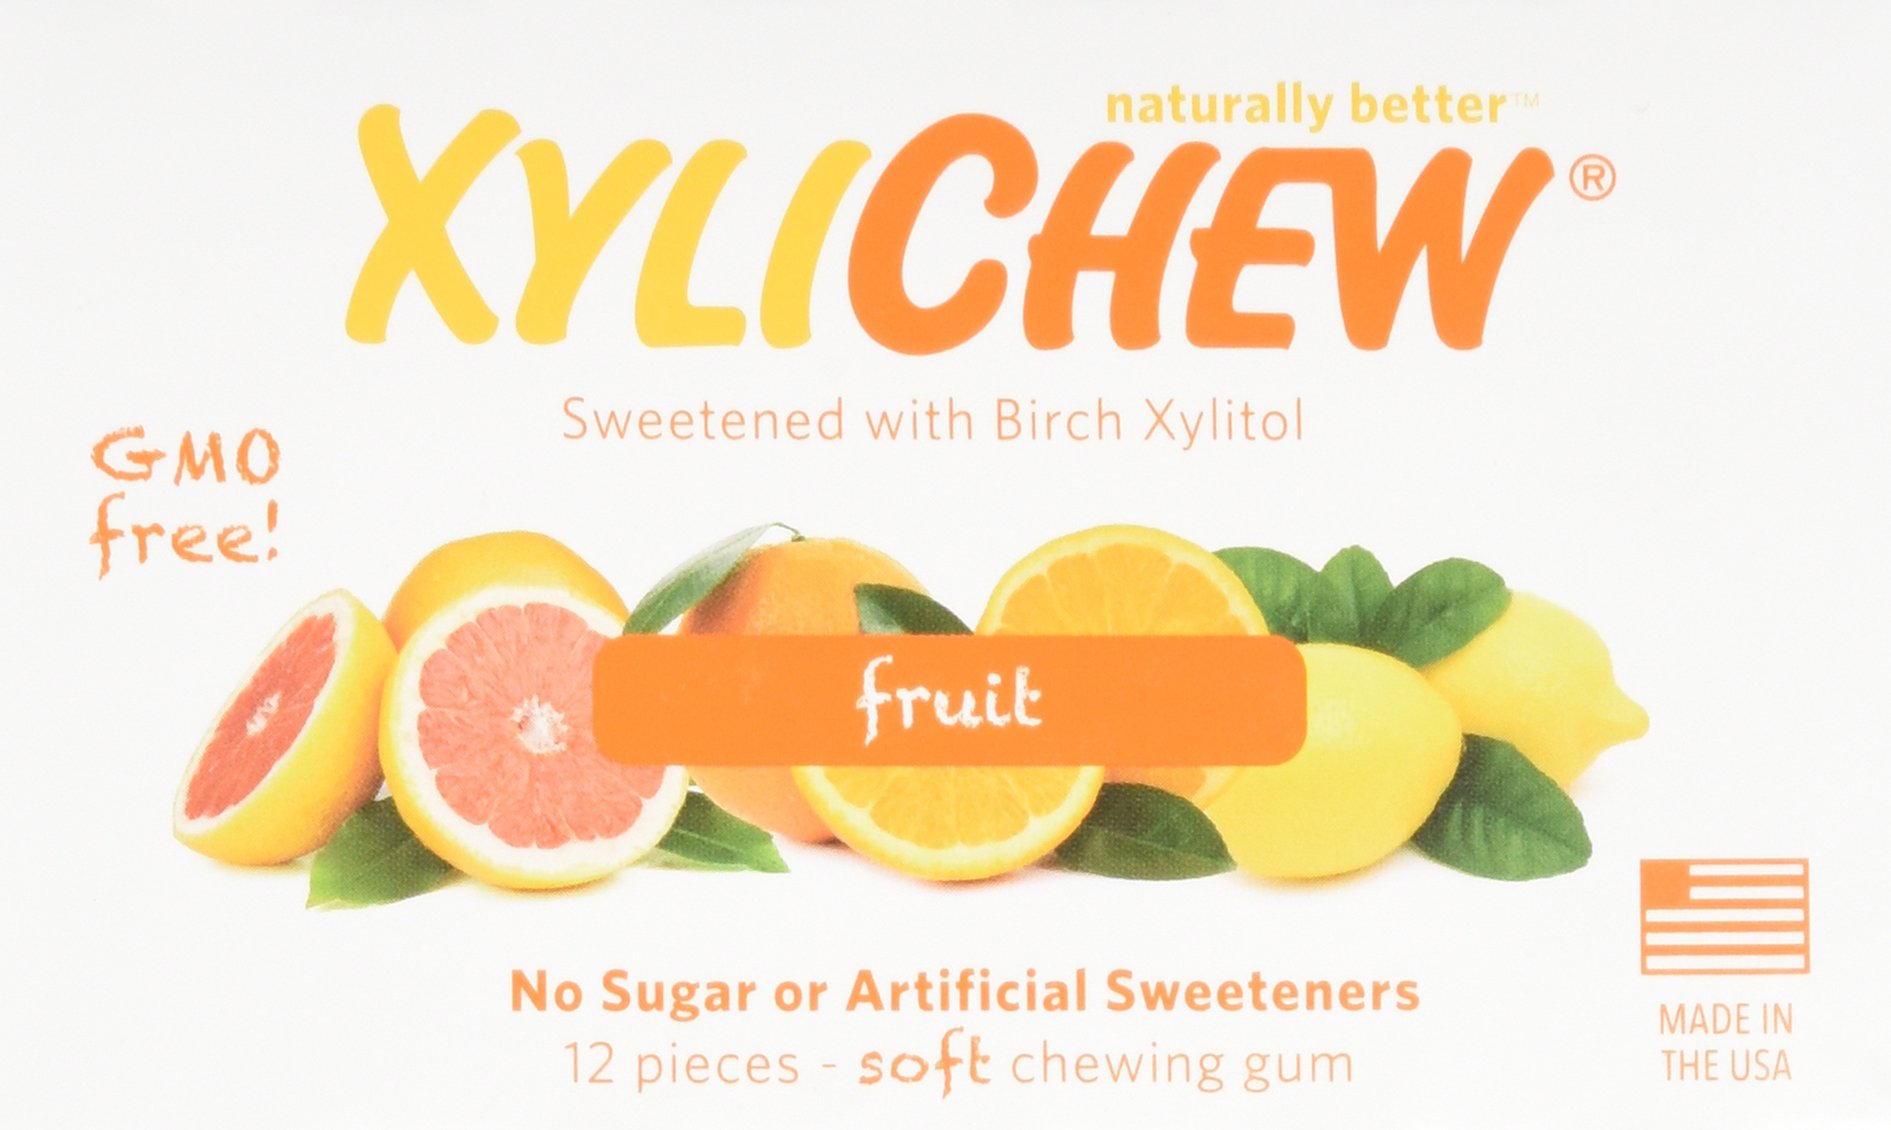 XyliChew Sugar Free Chewing Gum, Fruit, 12-Count Packages (Pack of 24)